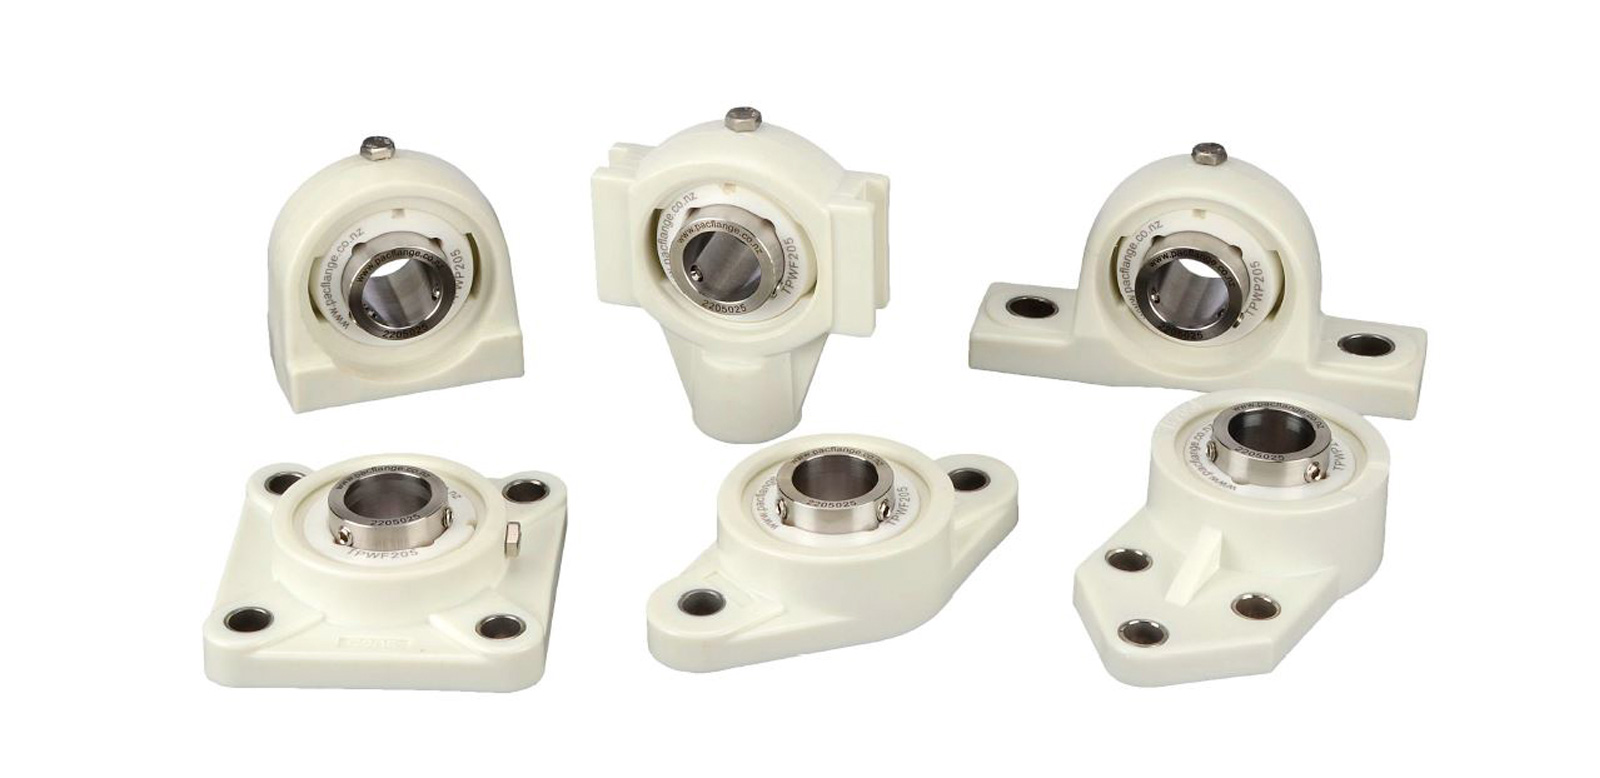 PacFlange conveyour units